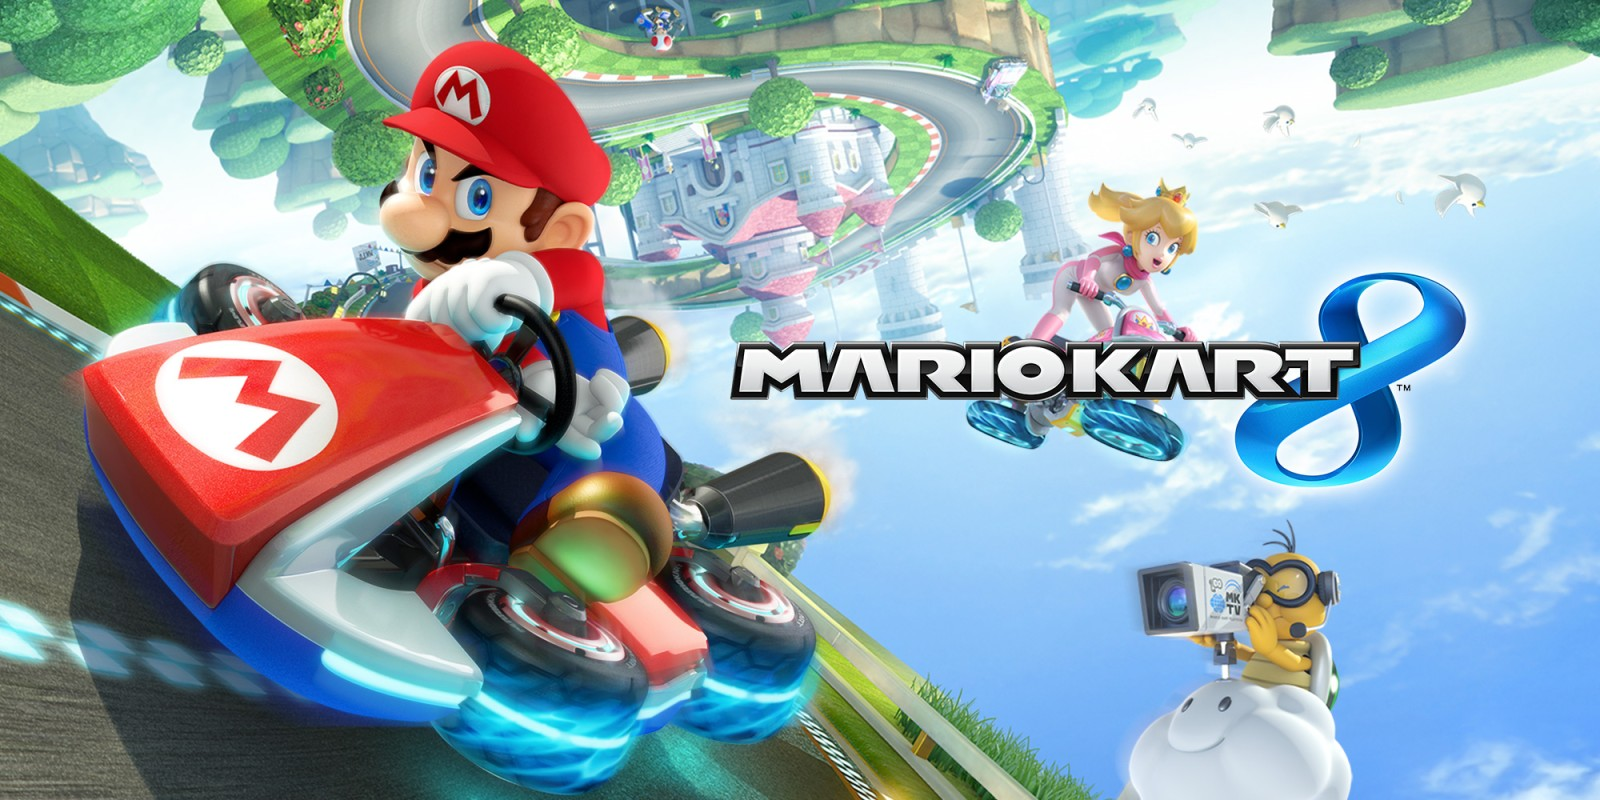 Mario Kart 8 PC - Play Mario Kart 8 For PC